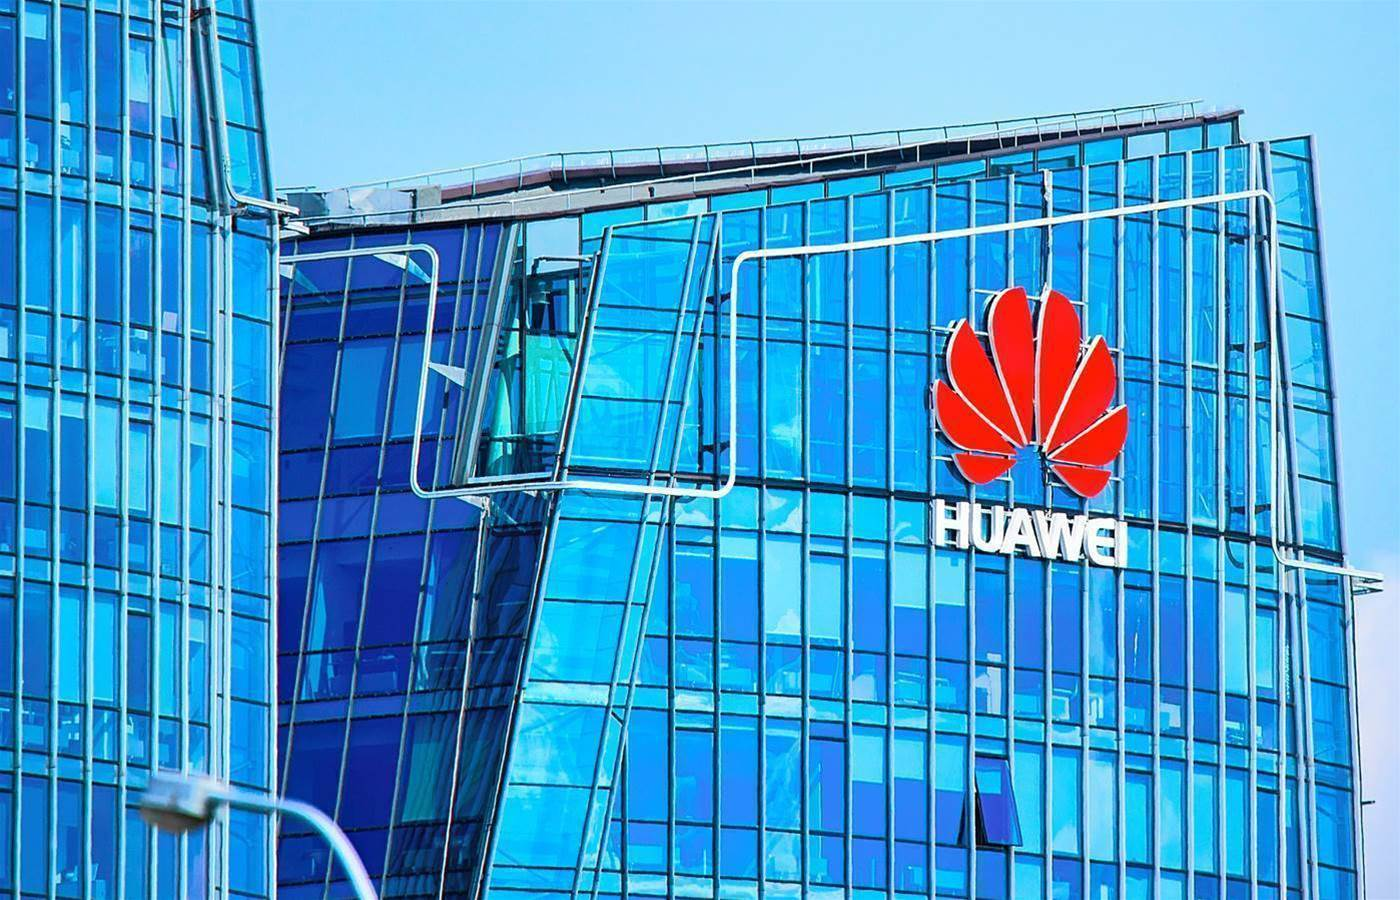 Huawei boss says he will not share data with China: report